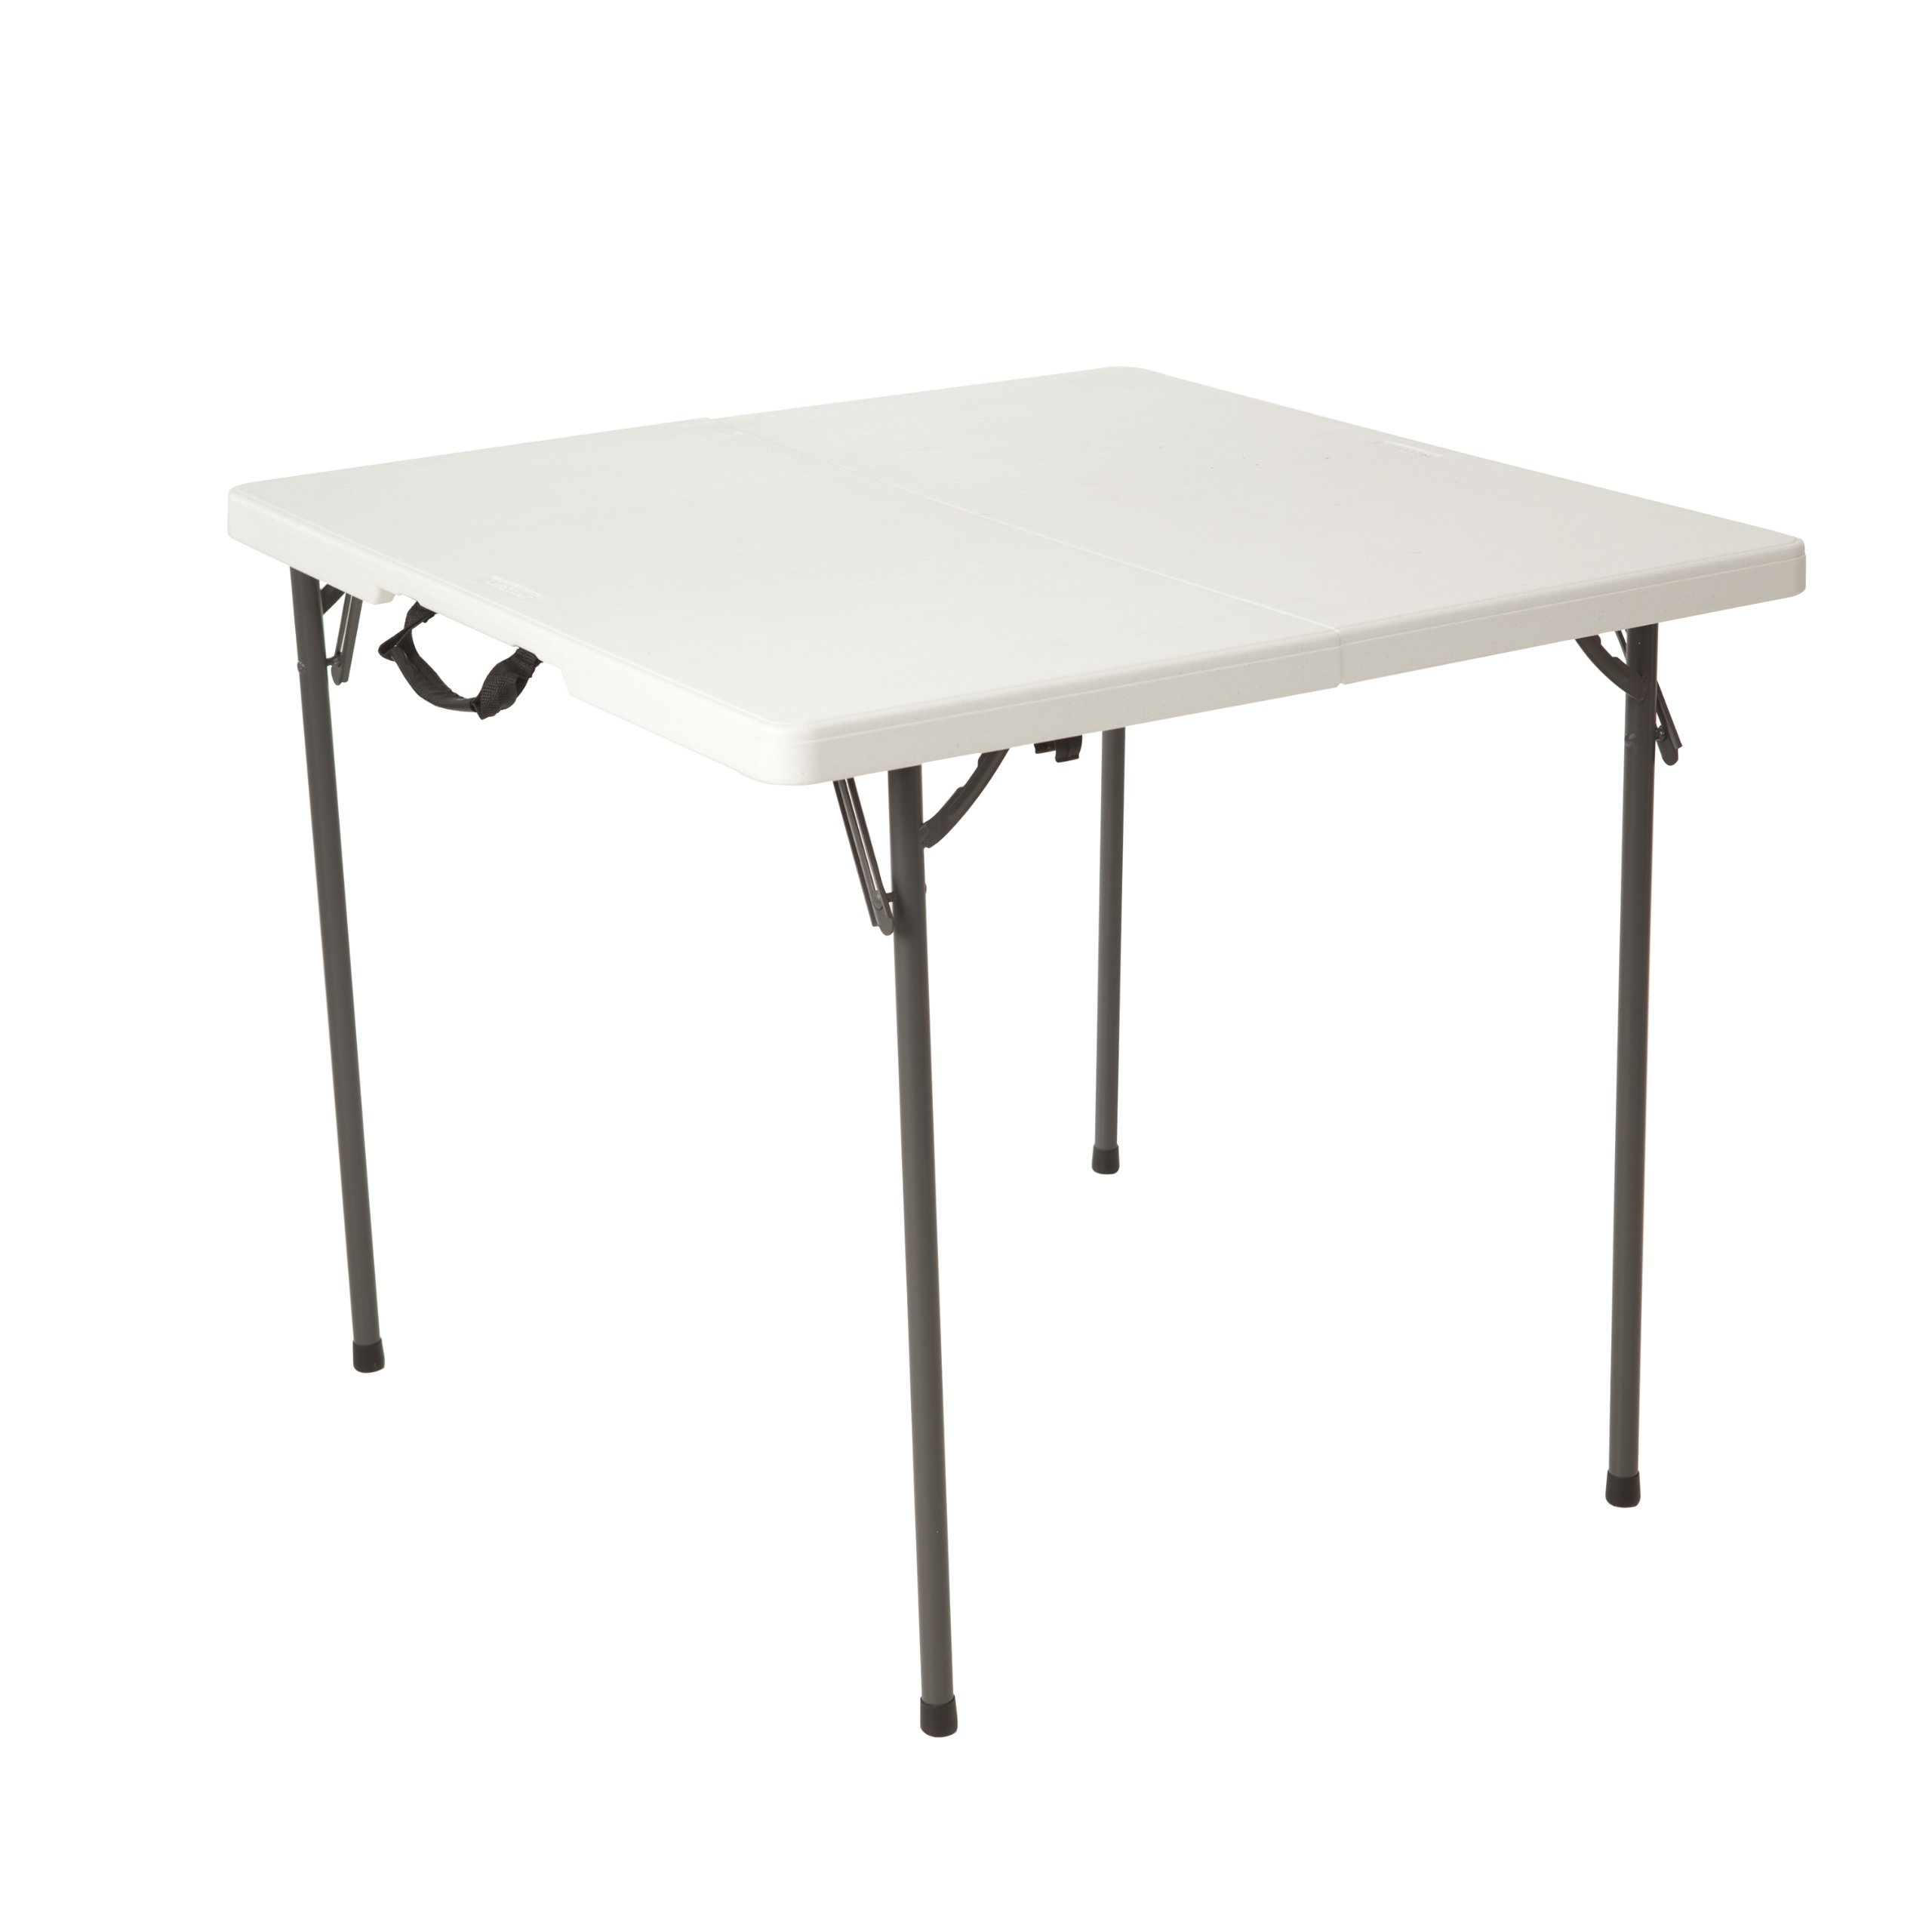 Lifetime 80273 Fold in Half Square Table, 34 Inch, White